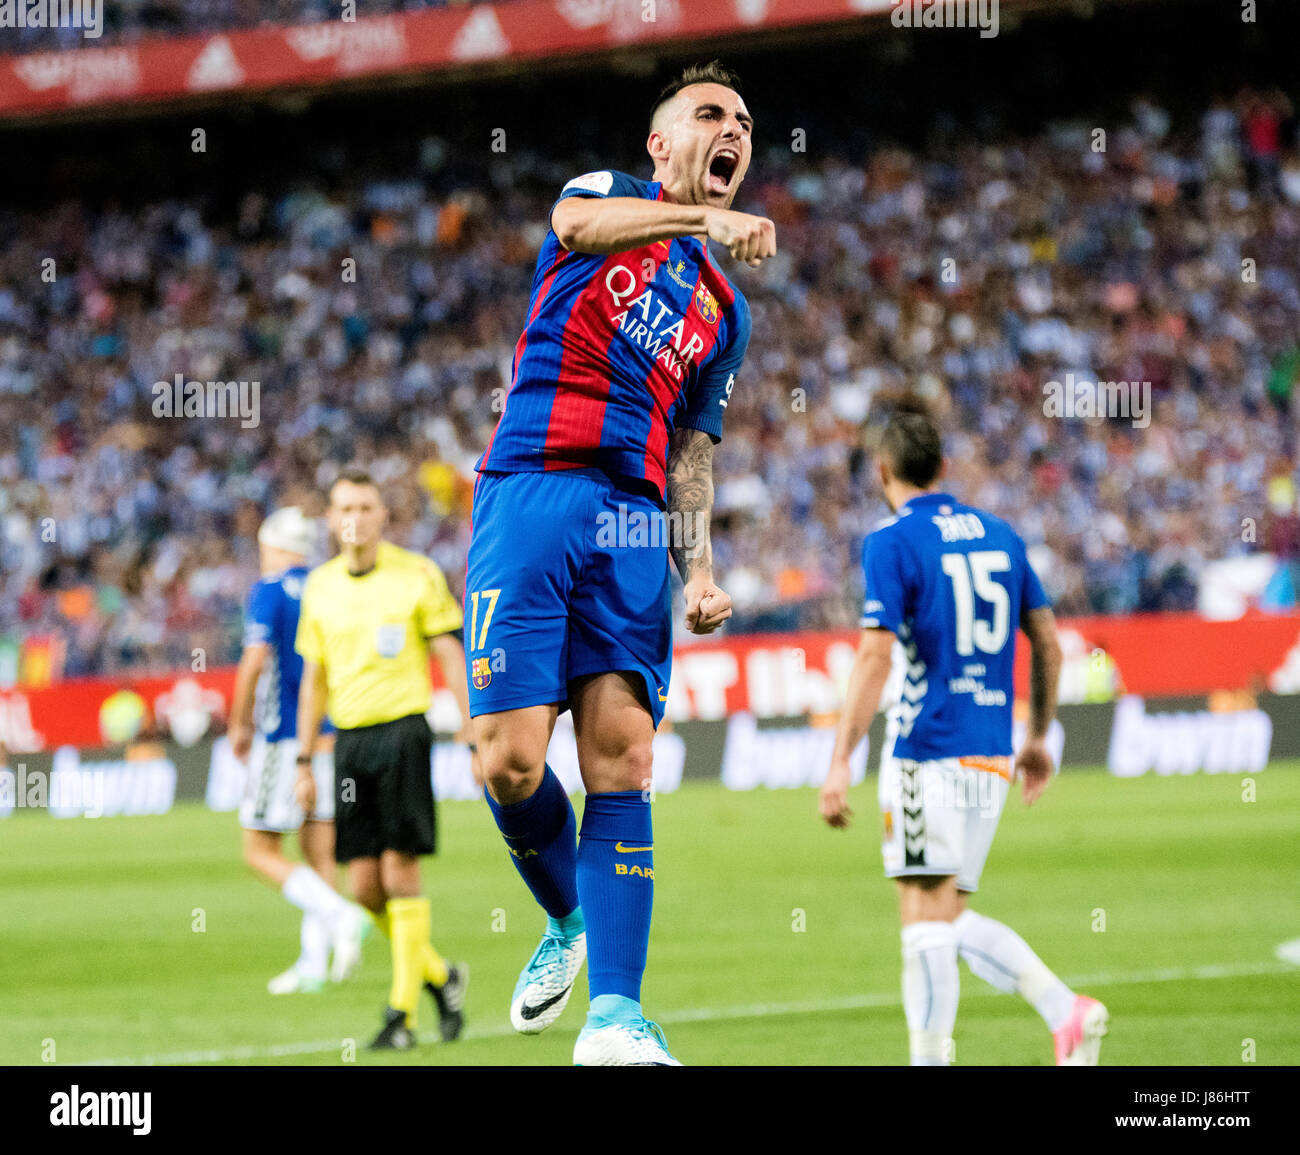 Madrid, Spain. 27th May, 2017. Paco Alcacer (FC Barcelona) celebrates his first goal during the football match of - Stock Image